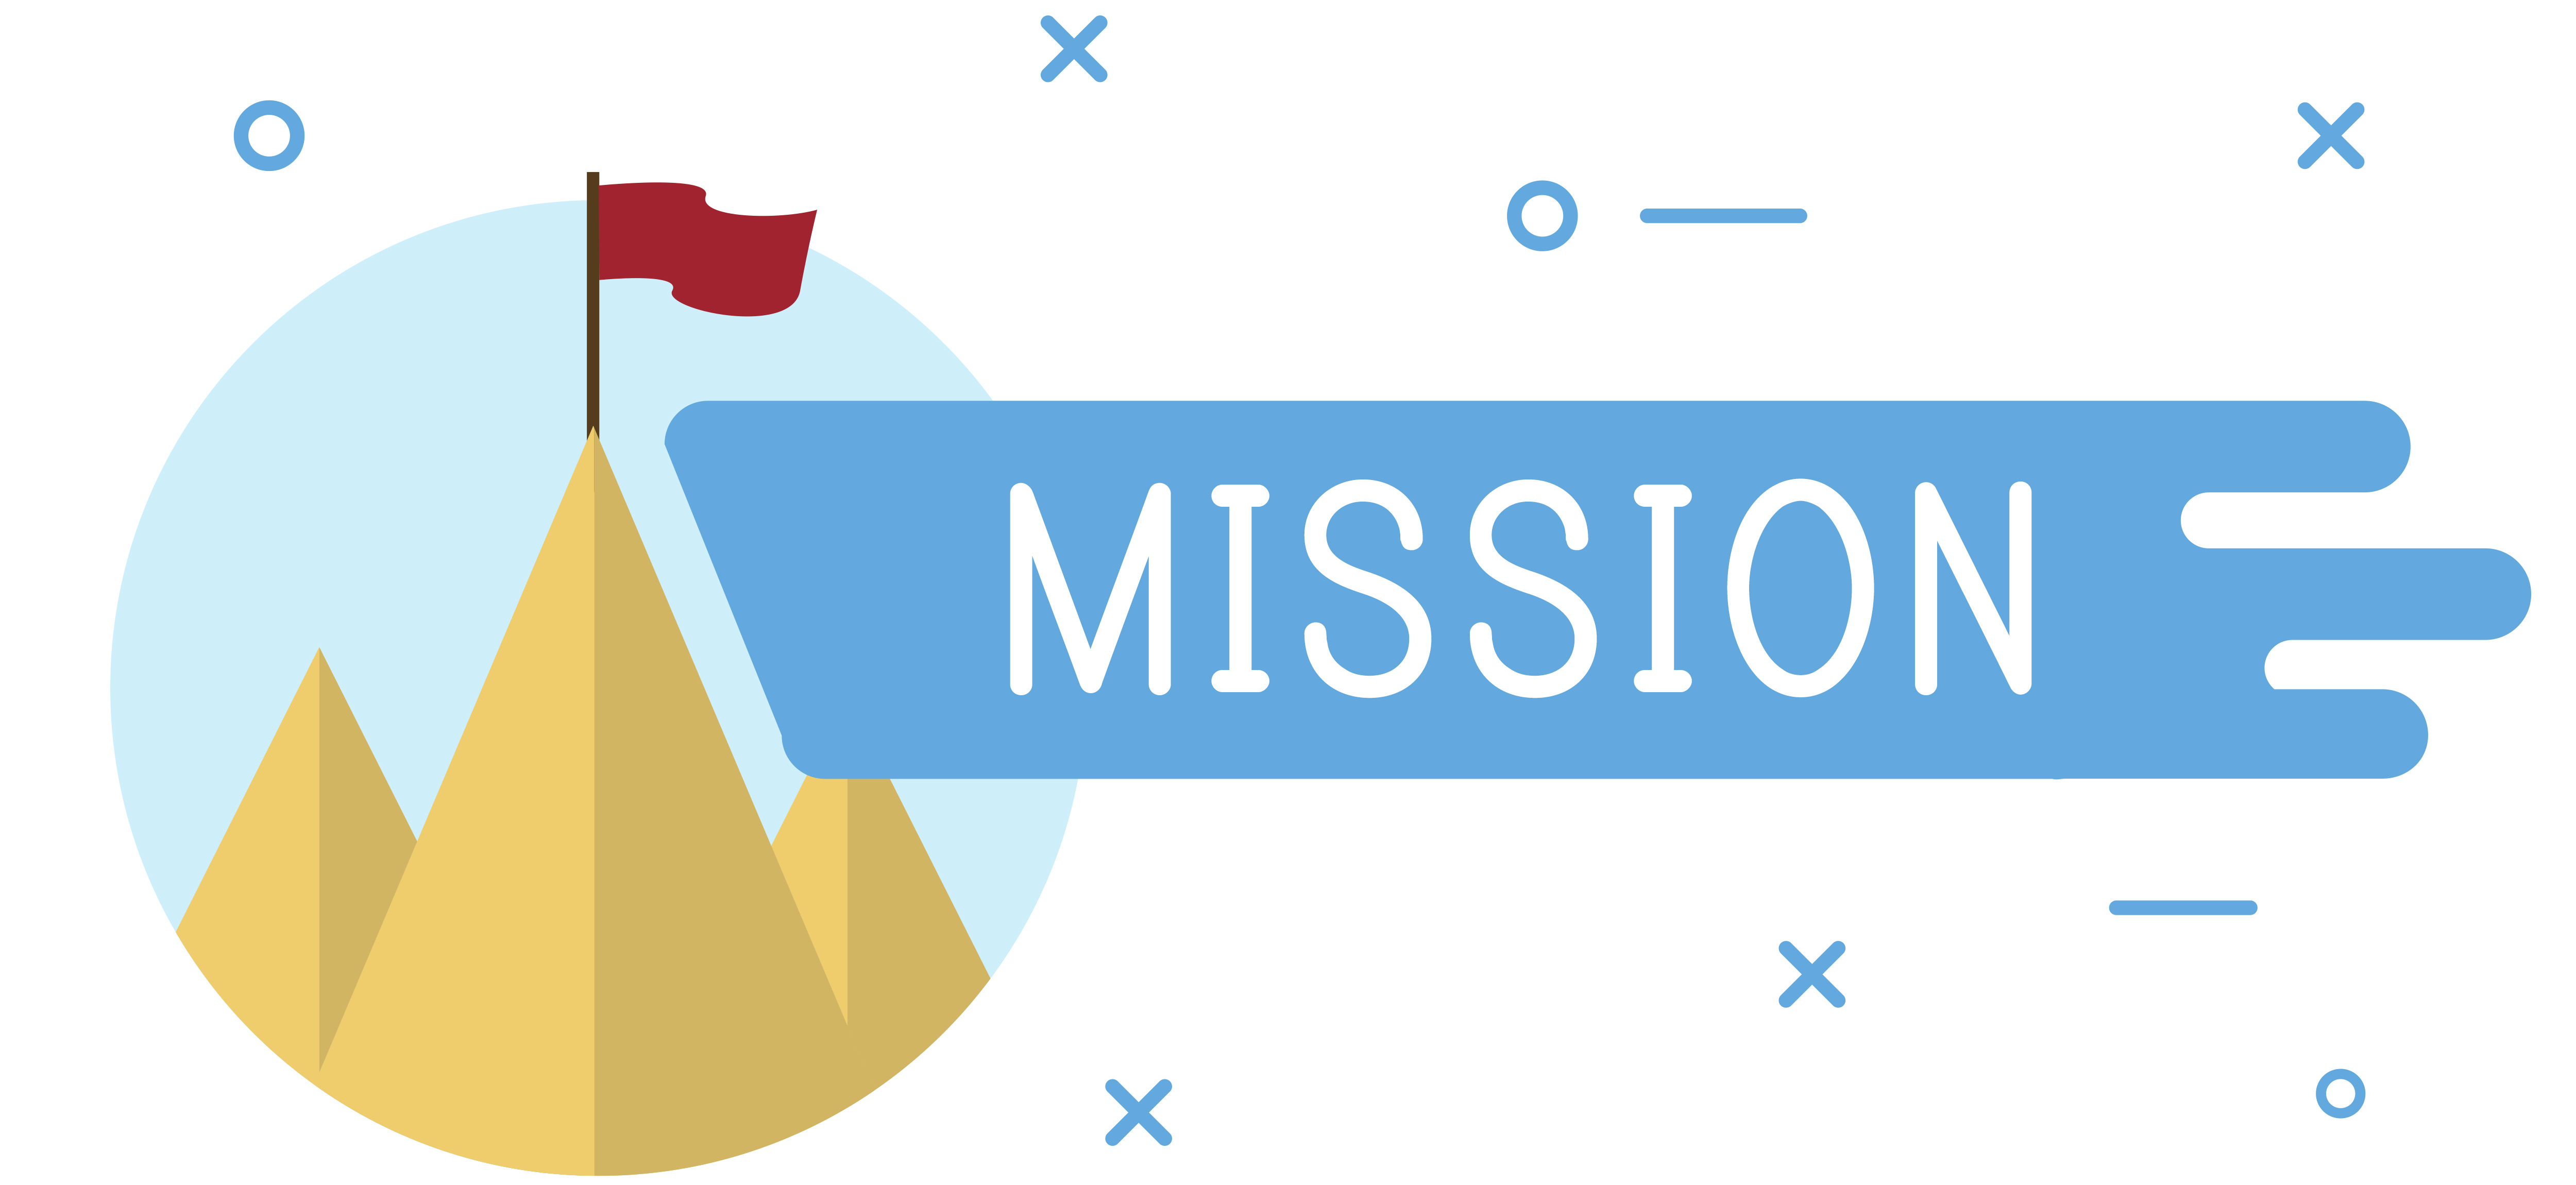 Mission Statement of tower and flag